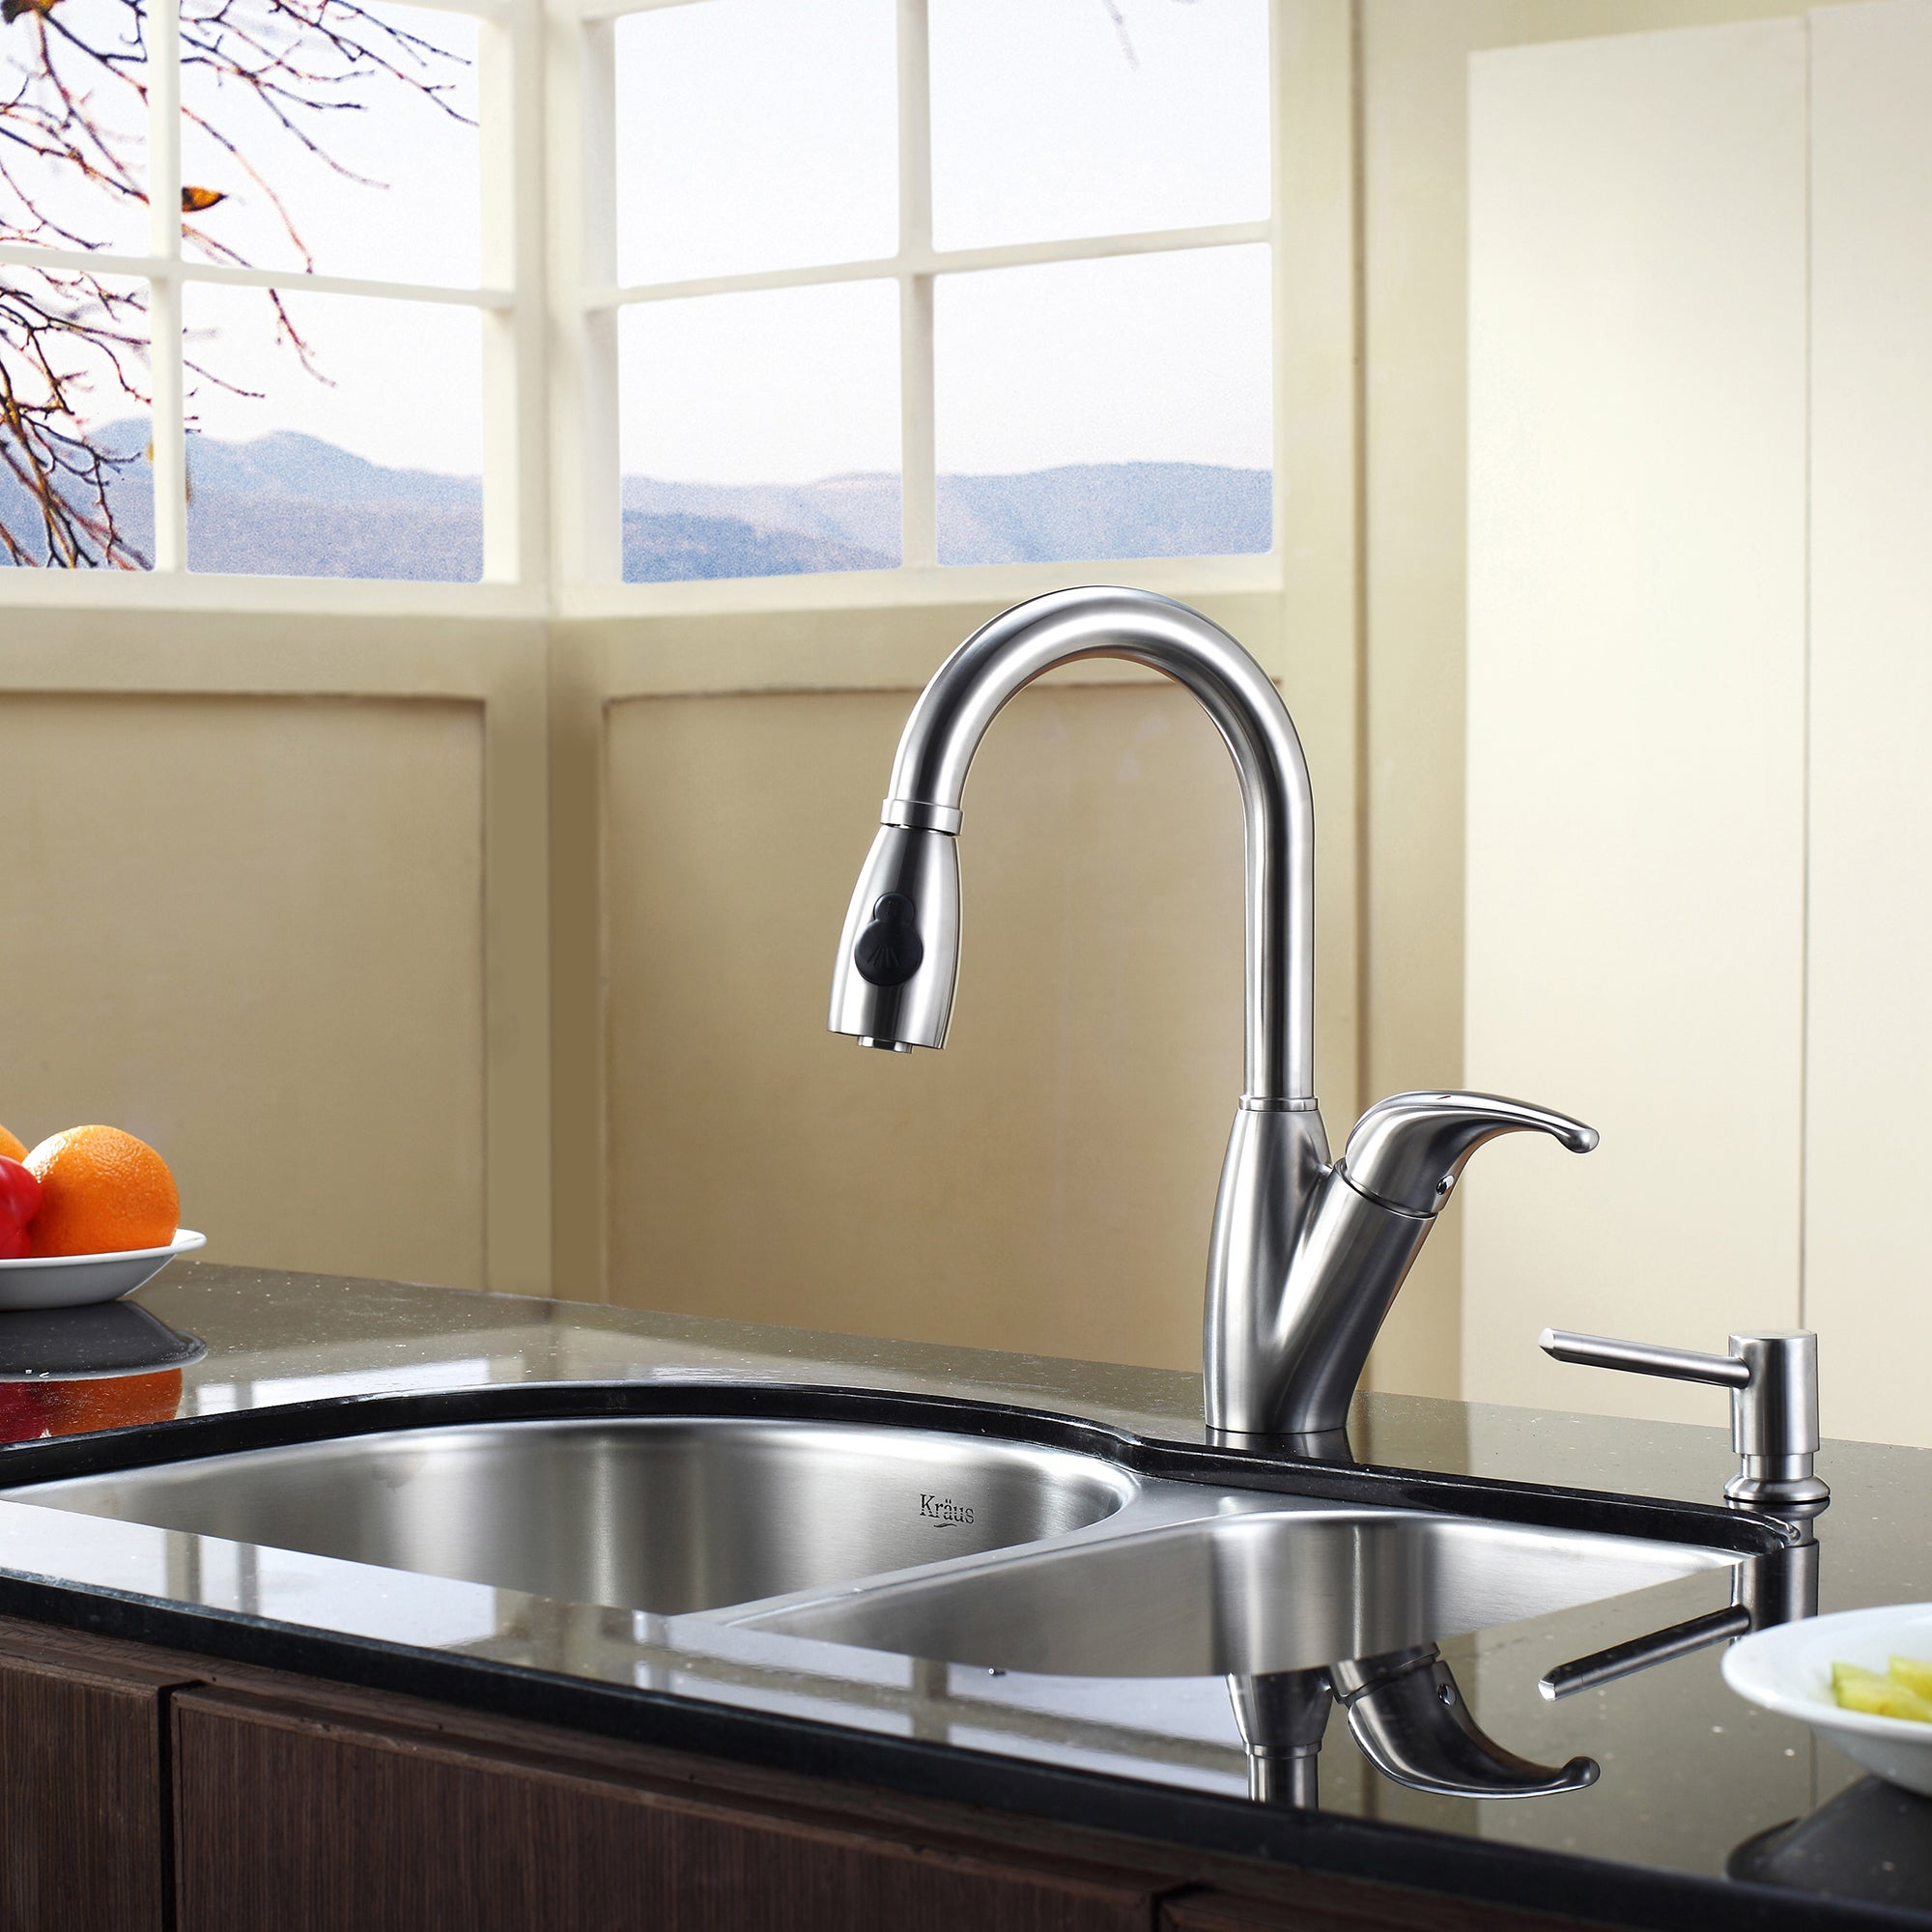 kraus 30 inch undermount 60 40 double bowl 16 gauge stainless steel kitchen sink with noisedefend soundproofing   free shipping today   overstock com       kraus 30 inch undermount 60 40 double bowl 16 gauge stainless      rh   overstock com